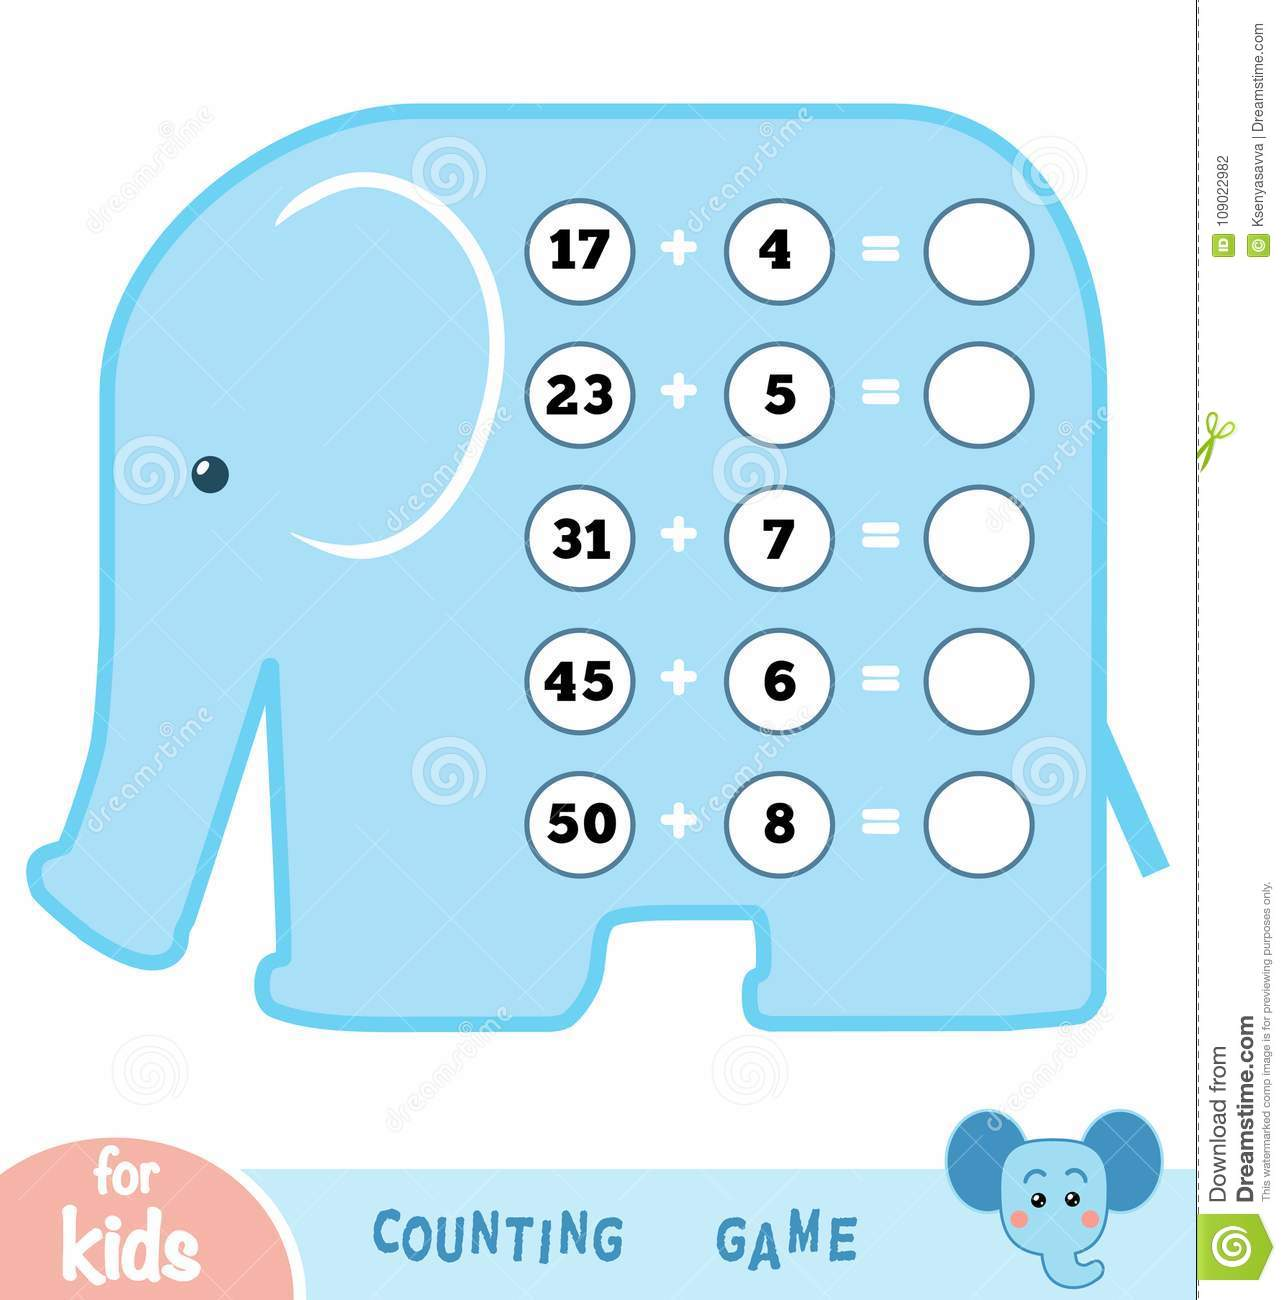 Counting Game For Children. Count The Numbers In The Picture Stock ...